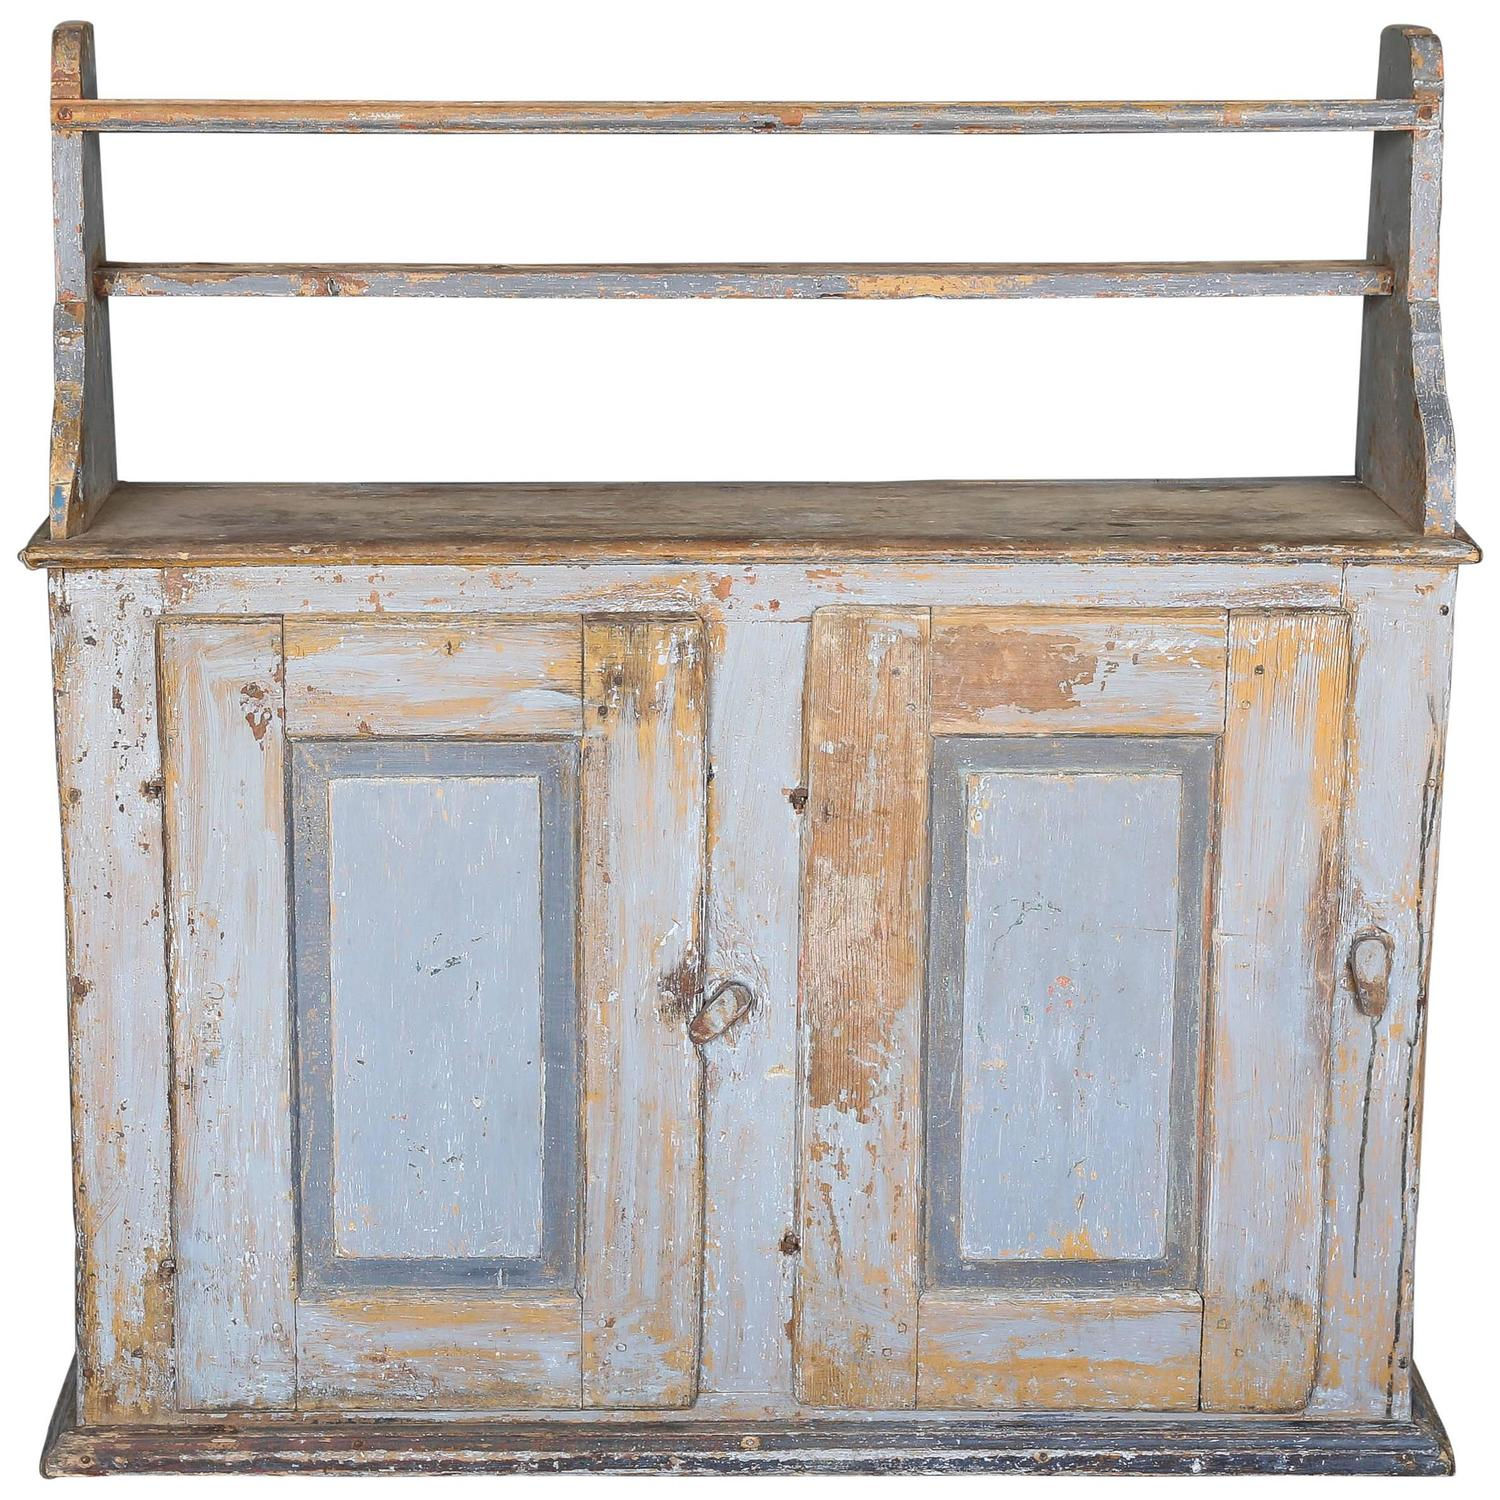 Antique Primitive 18th Century Narrow Swedish Buffet Cabinet with Shelf For  Sale at 1stdibs - Antique Primitive 18th Century Narrow Swedish Buffet Cabinet With